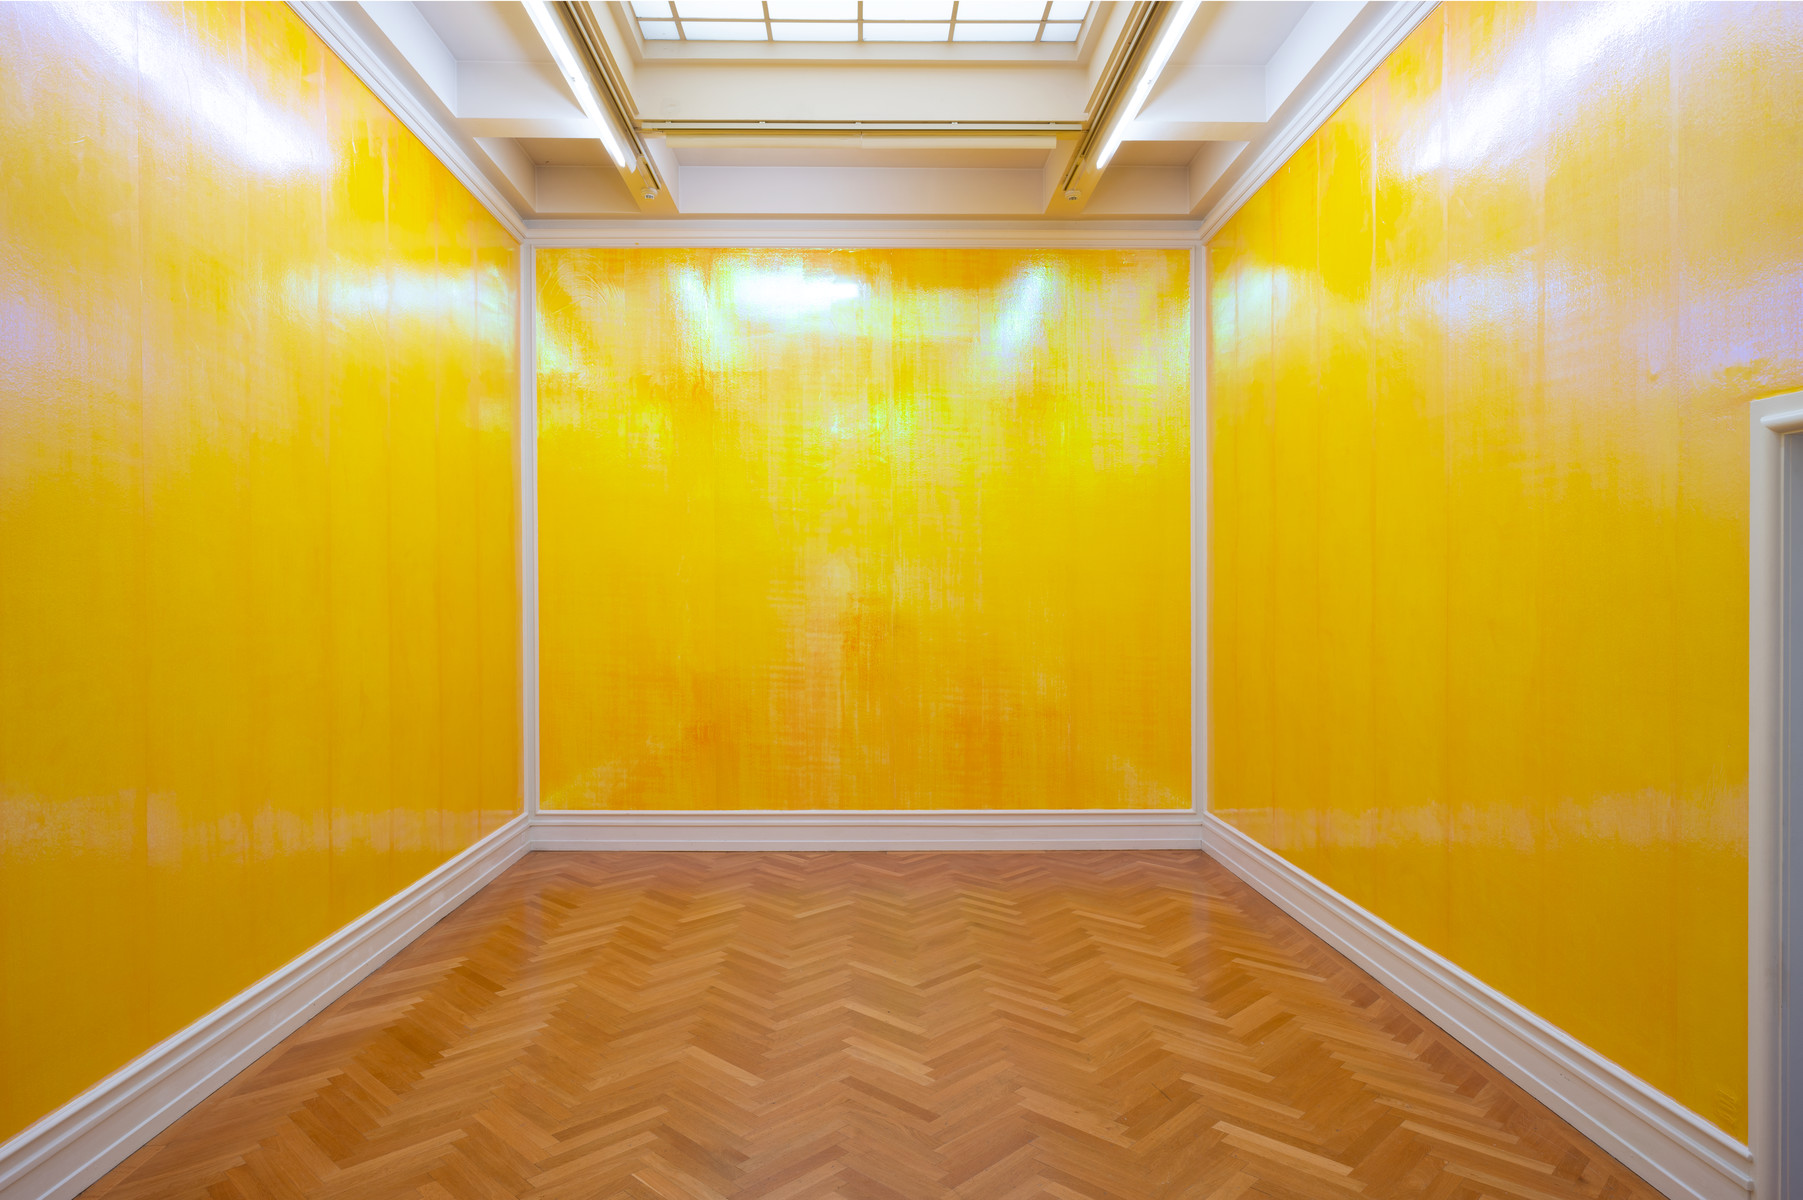 Lutz Bacher, It's Golden, 2013.